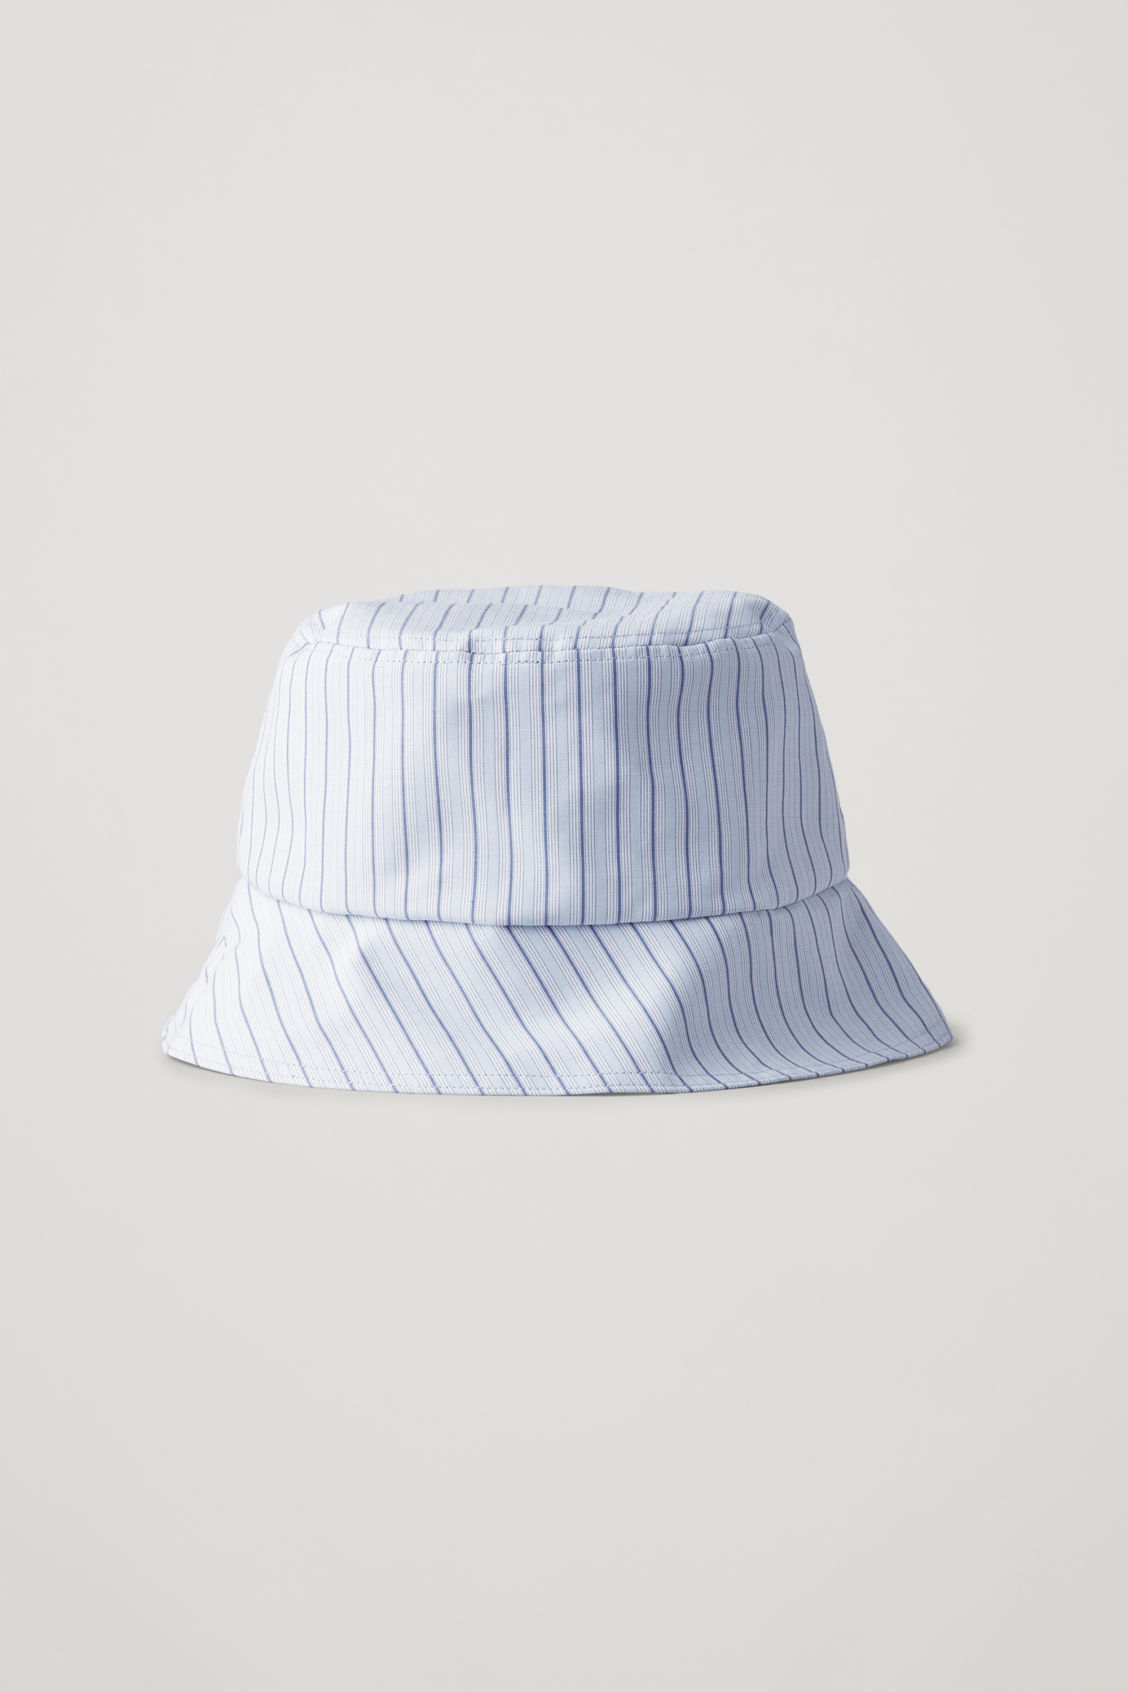 Cos Striped Bucket Hat In Blue  e9699f694b9a